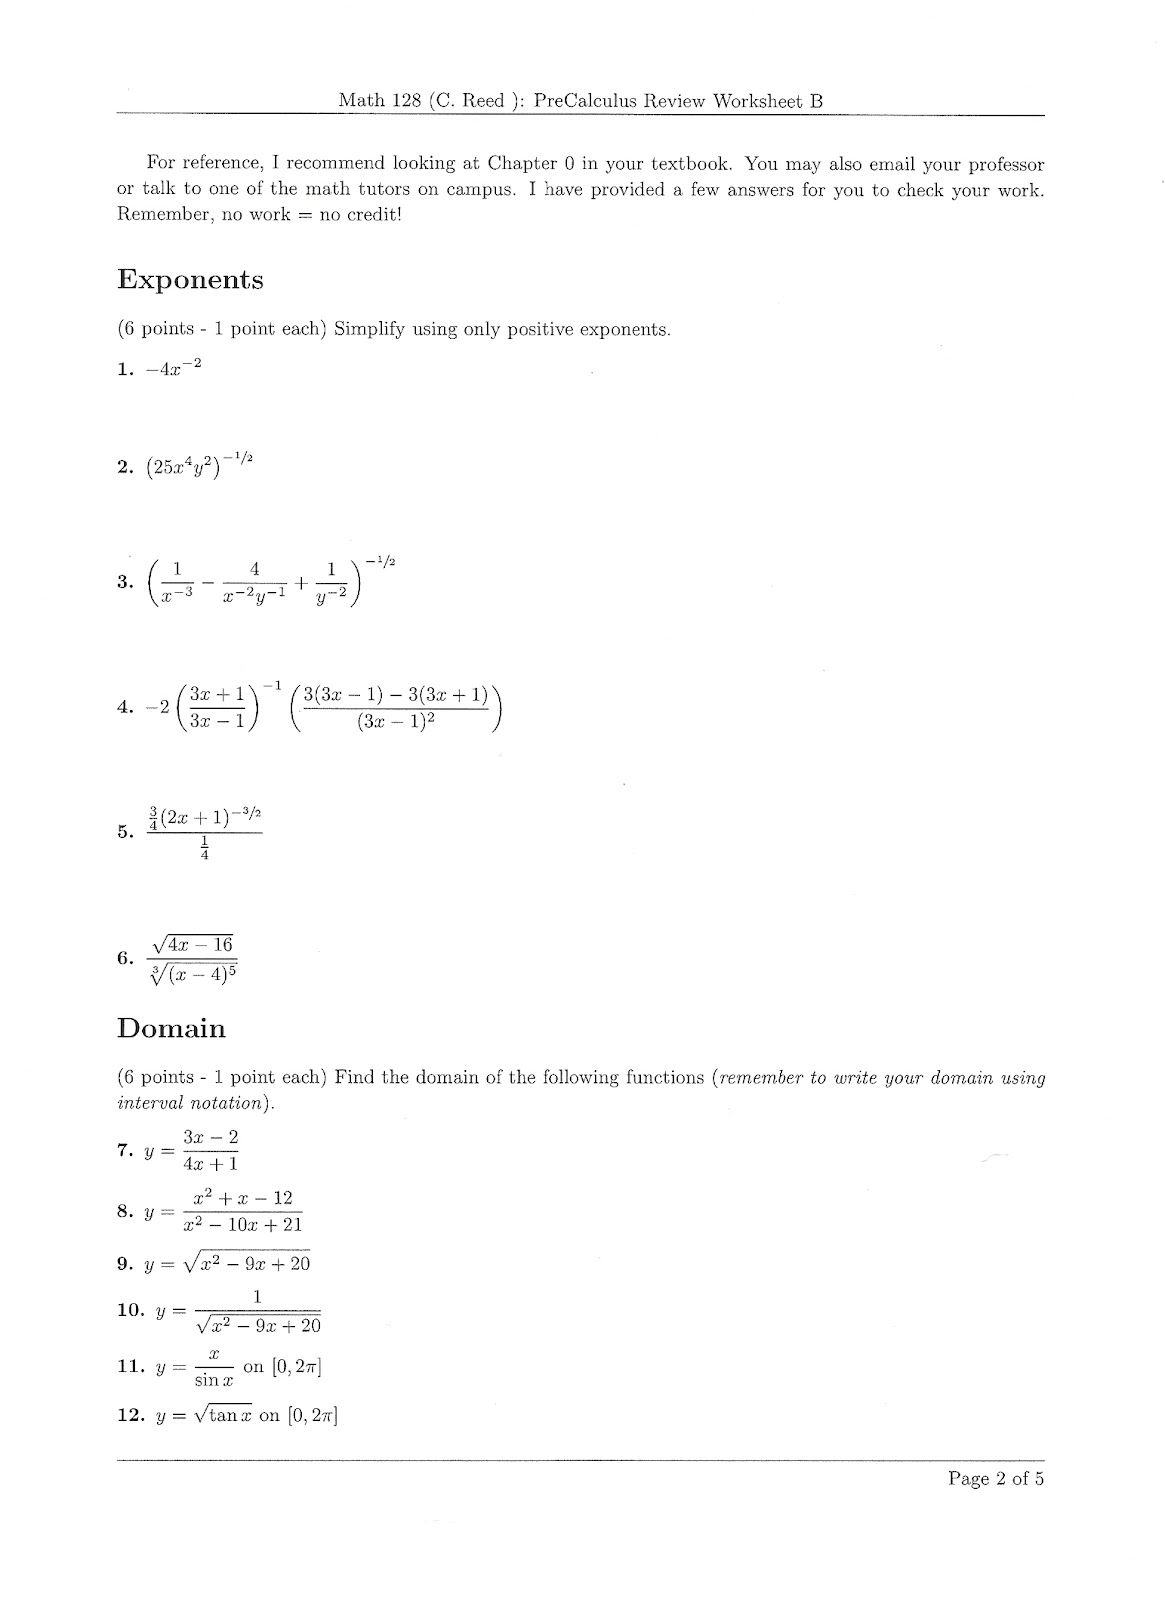 Worksheet Pre Calc Worksheets first day plan calculus i after the introductory lesson limits usually handed students a precalculus and algebra review worksheet heres one page of my worksheet